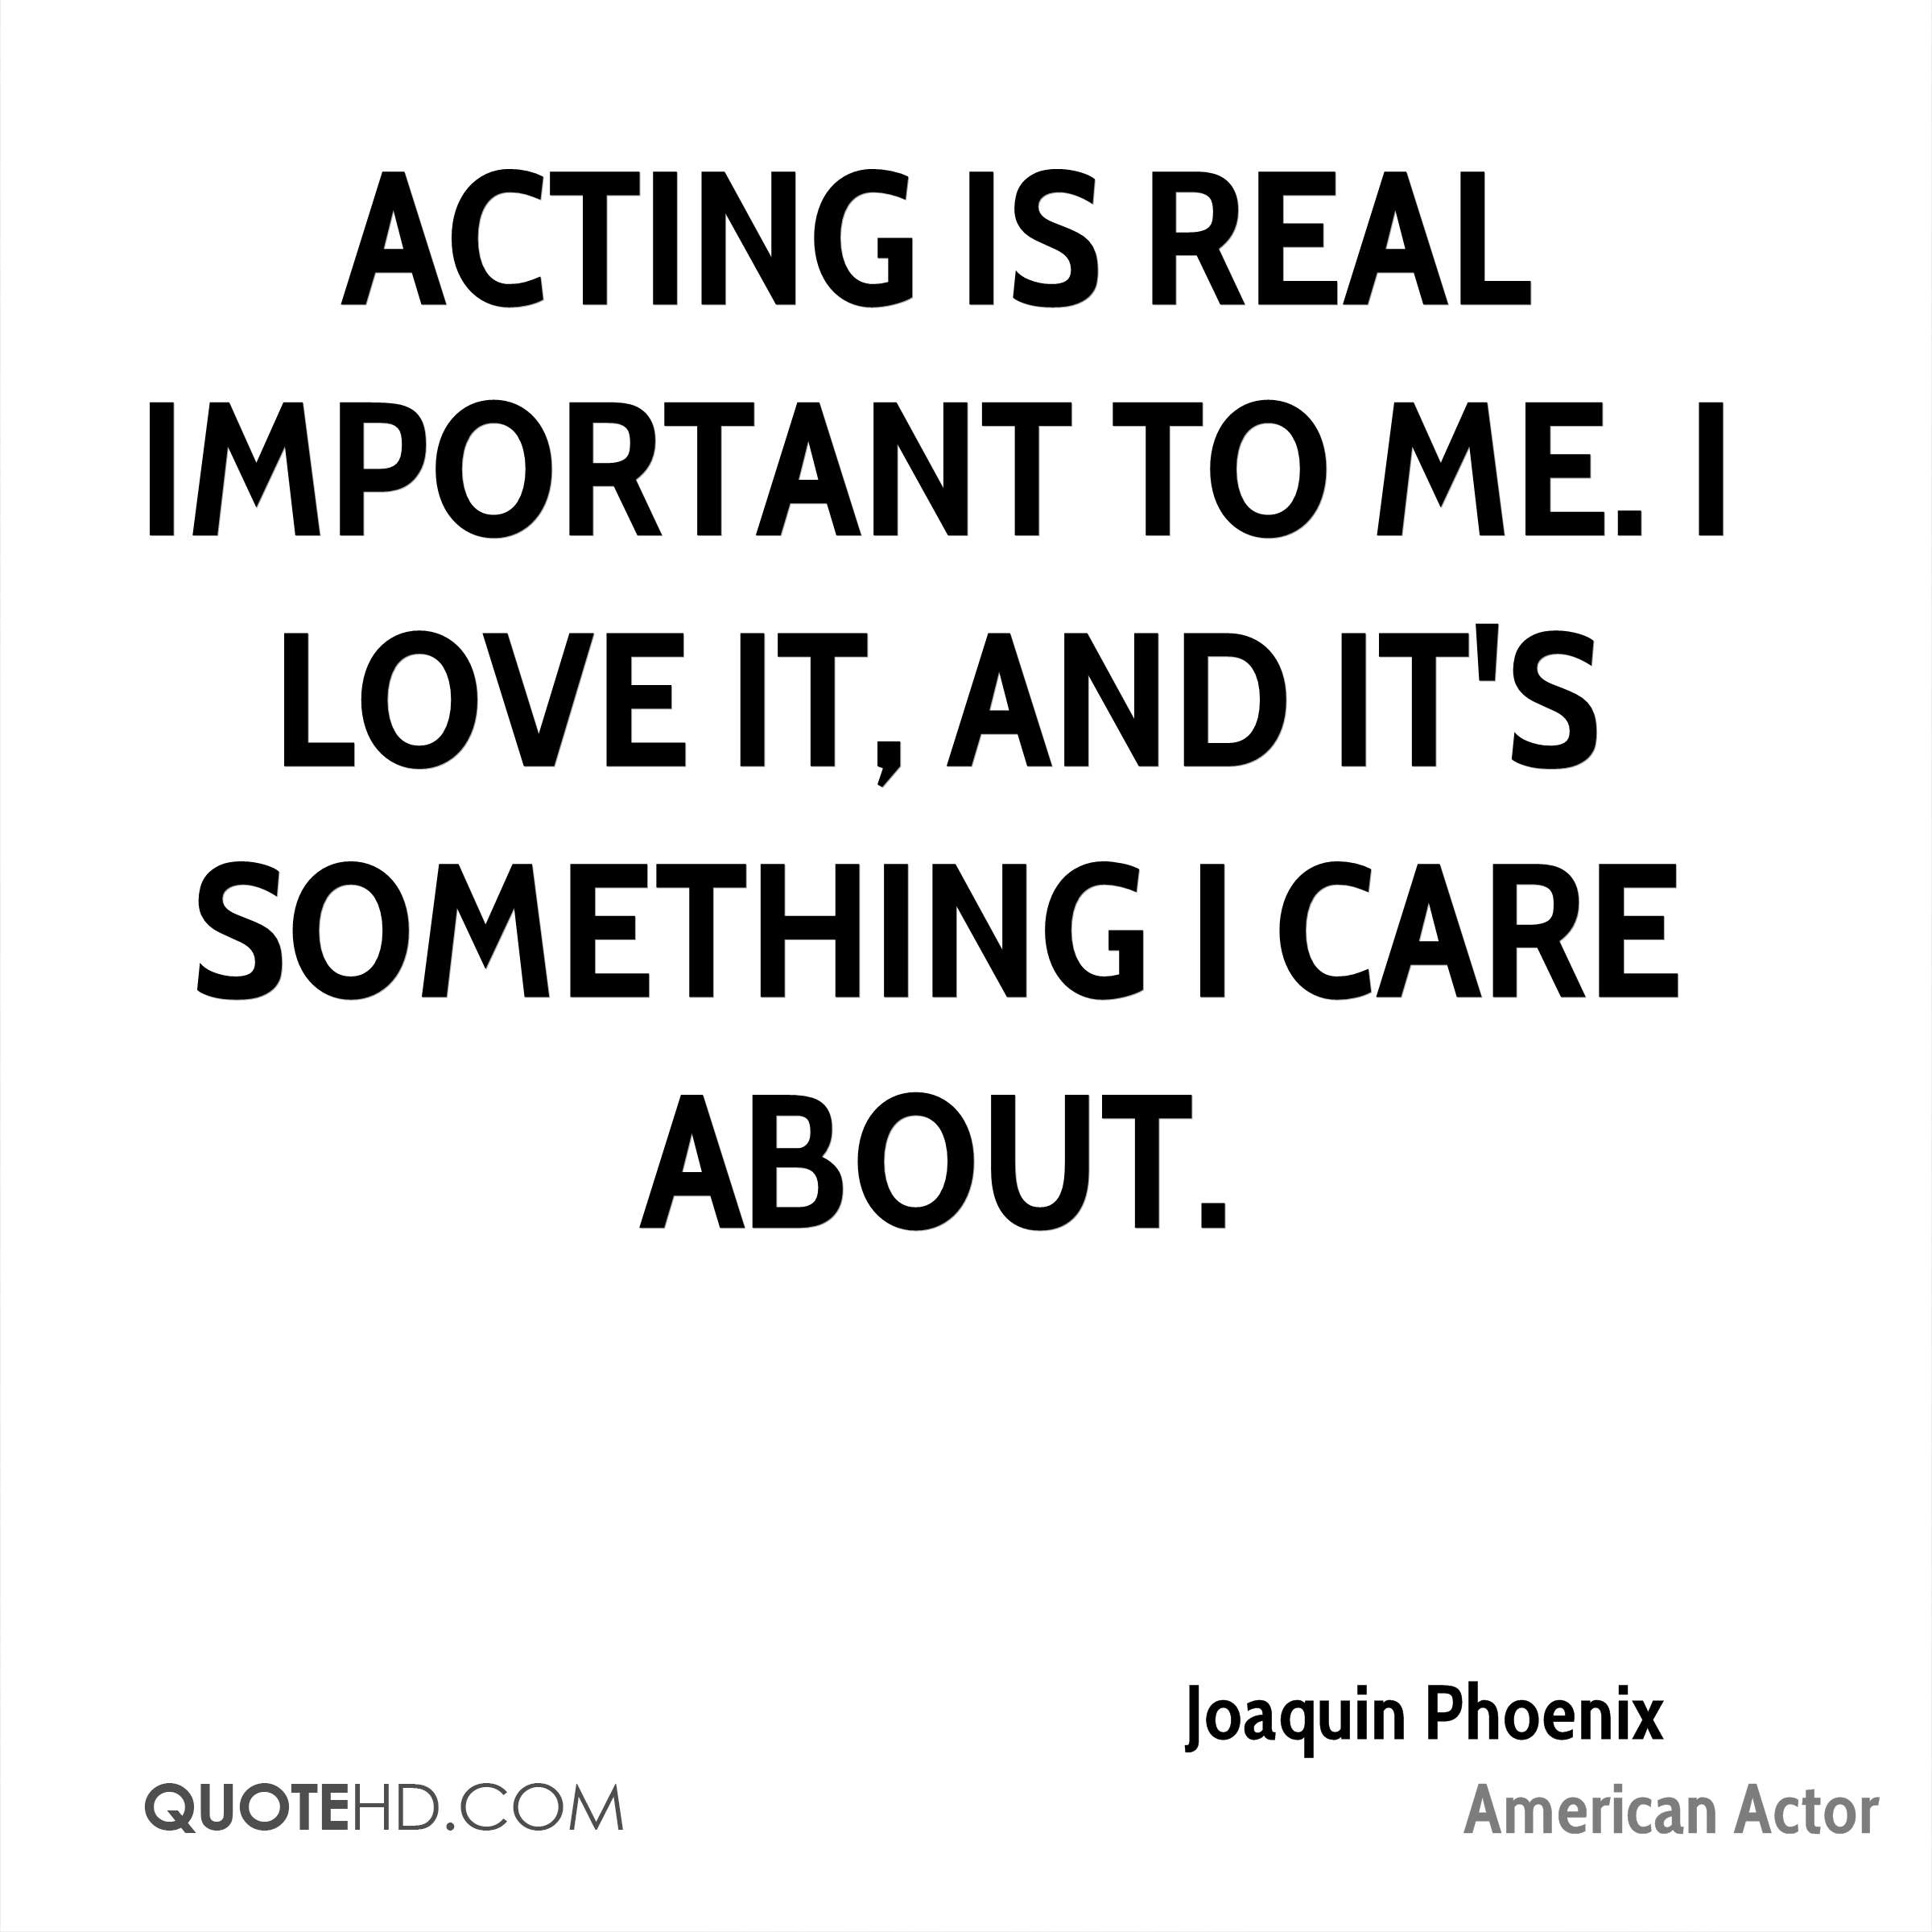 Acting is real important to me. I love it, and it's something I care about.